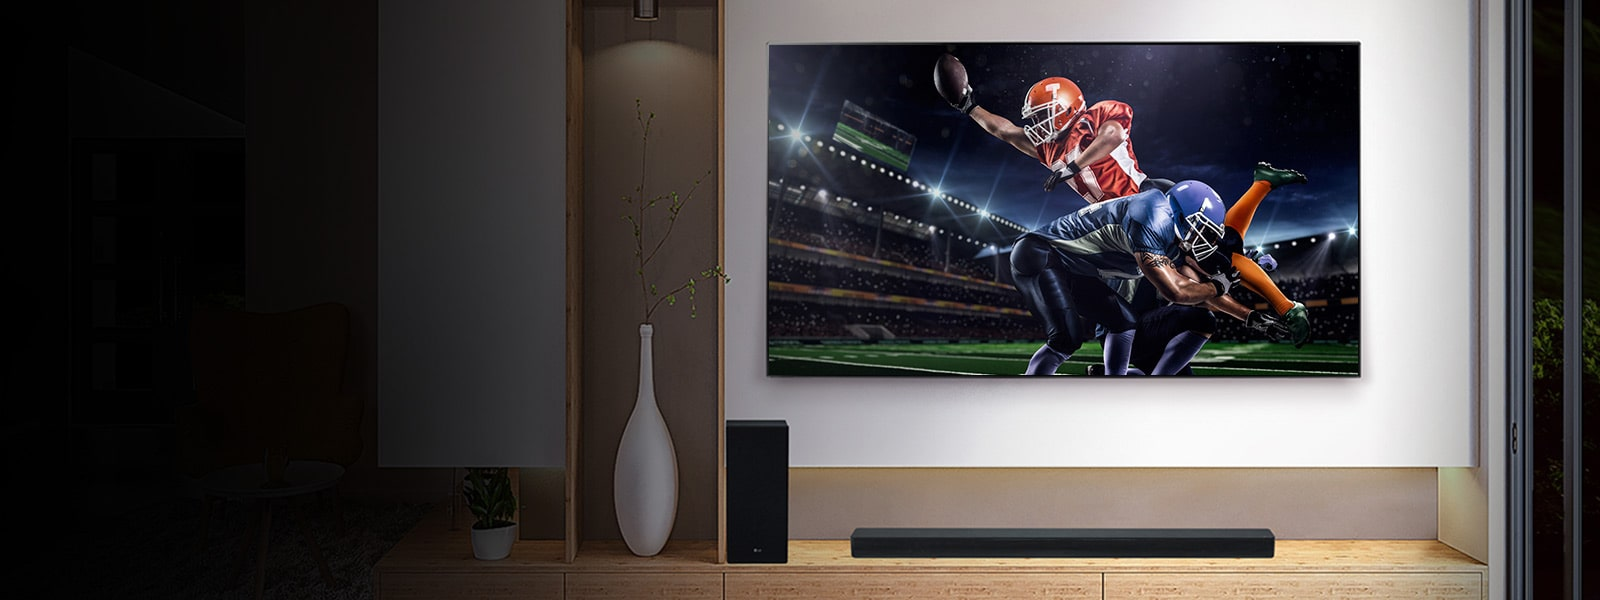 LG SUPER UHD TVs with 4K HDR Technology | LG USA